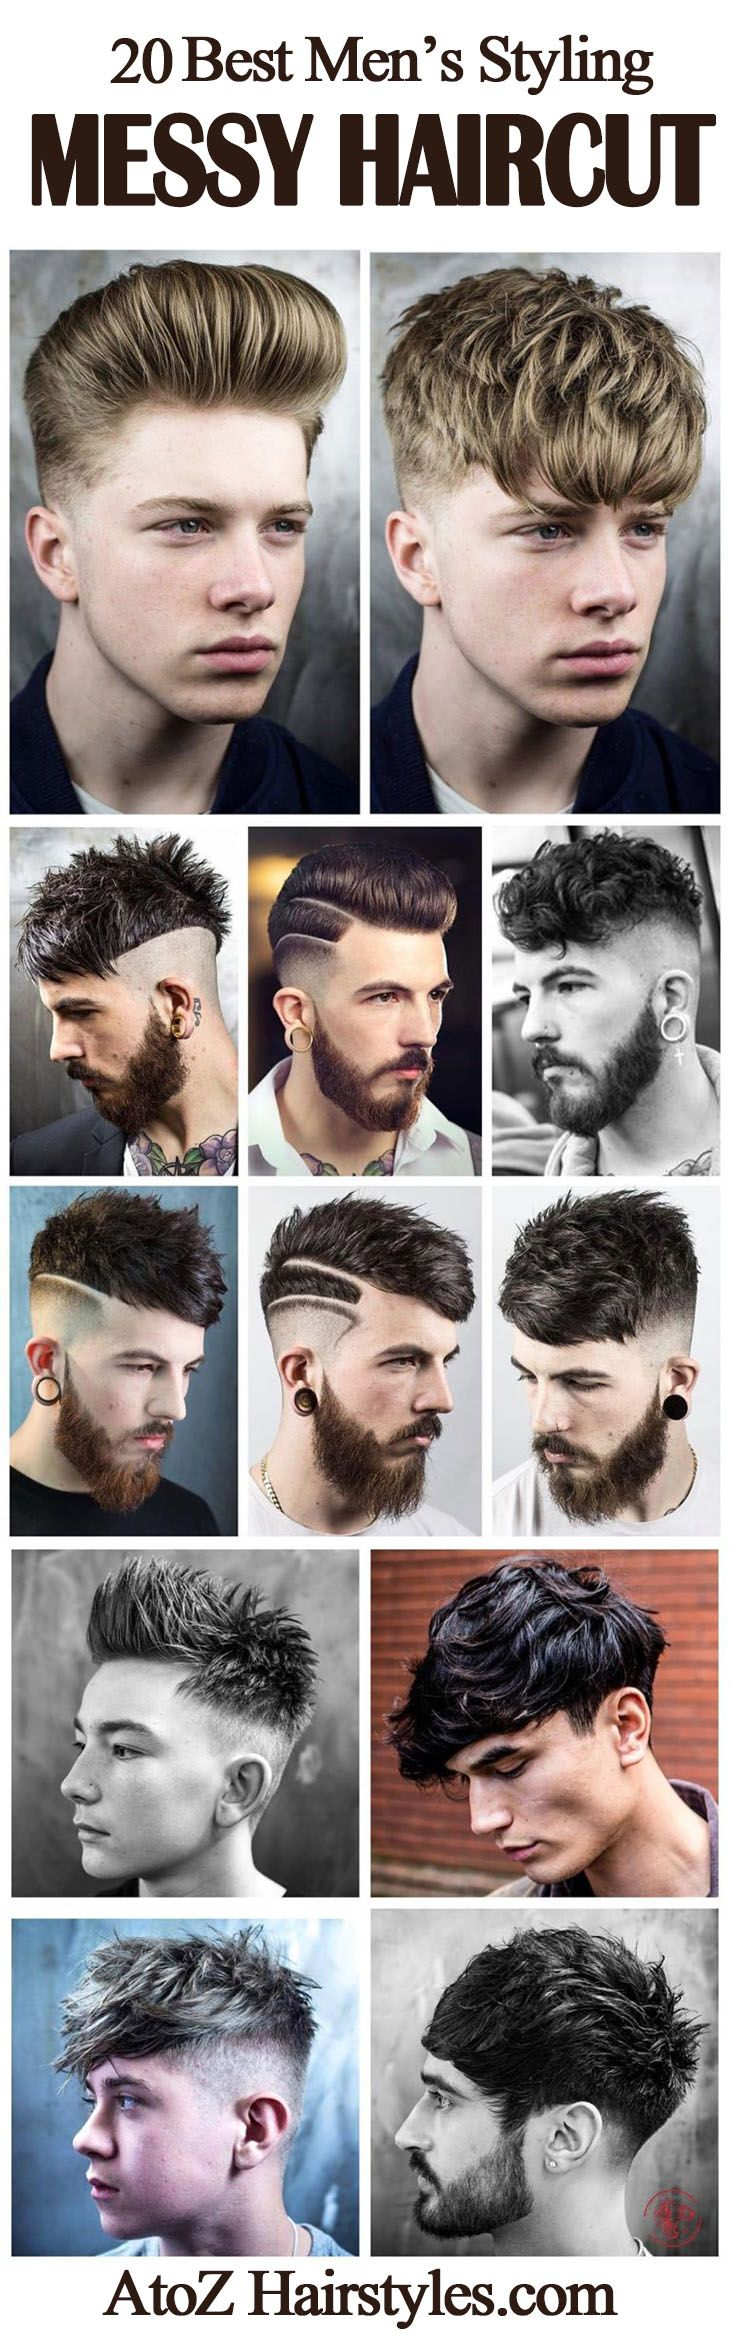 Do you think guys look better with long or short hair page 2 - Messy Hairstyles 20 Best Men S Messy Haircut Styling It